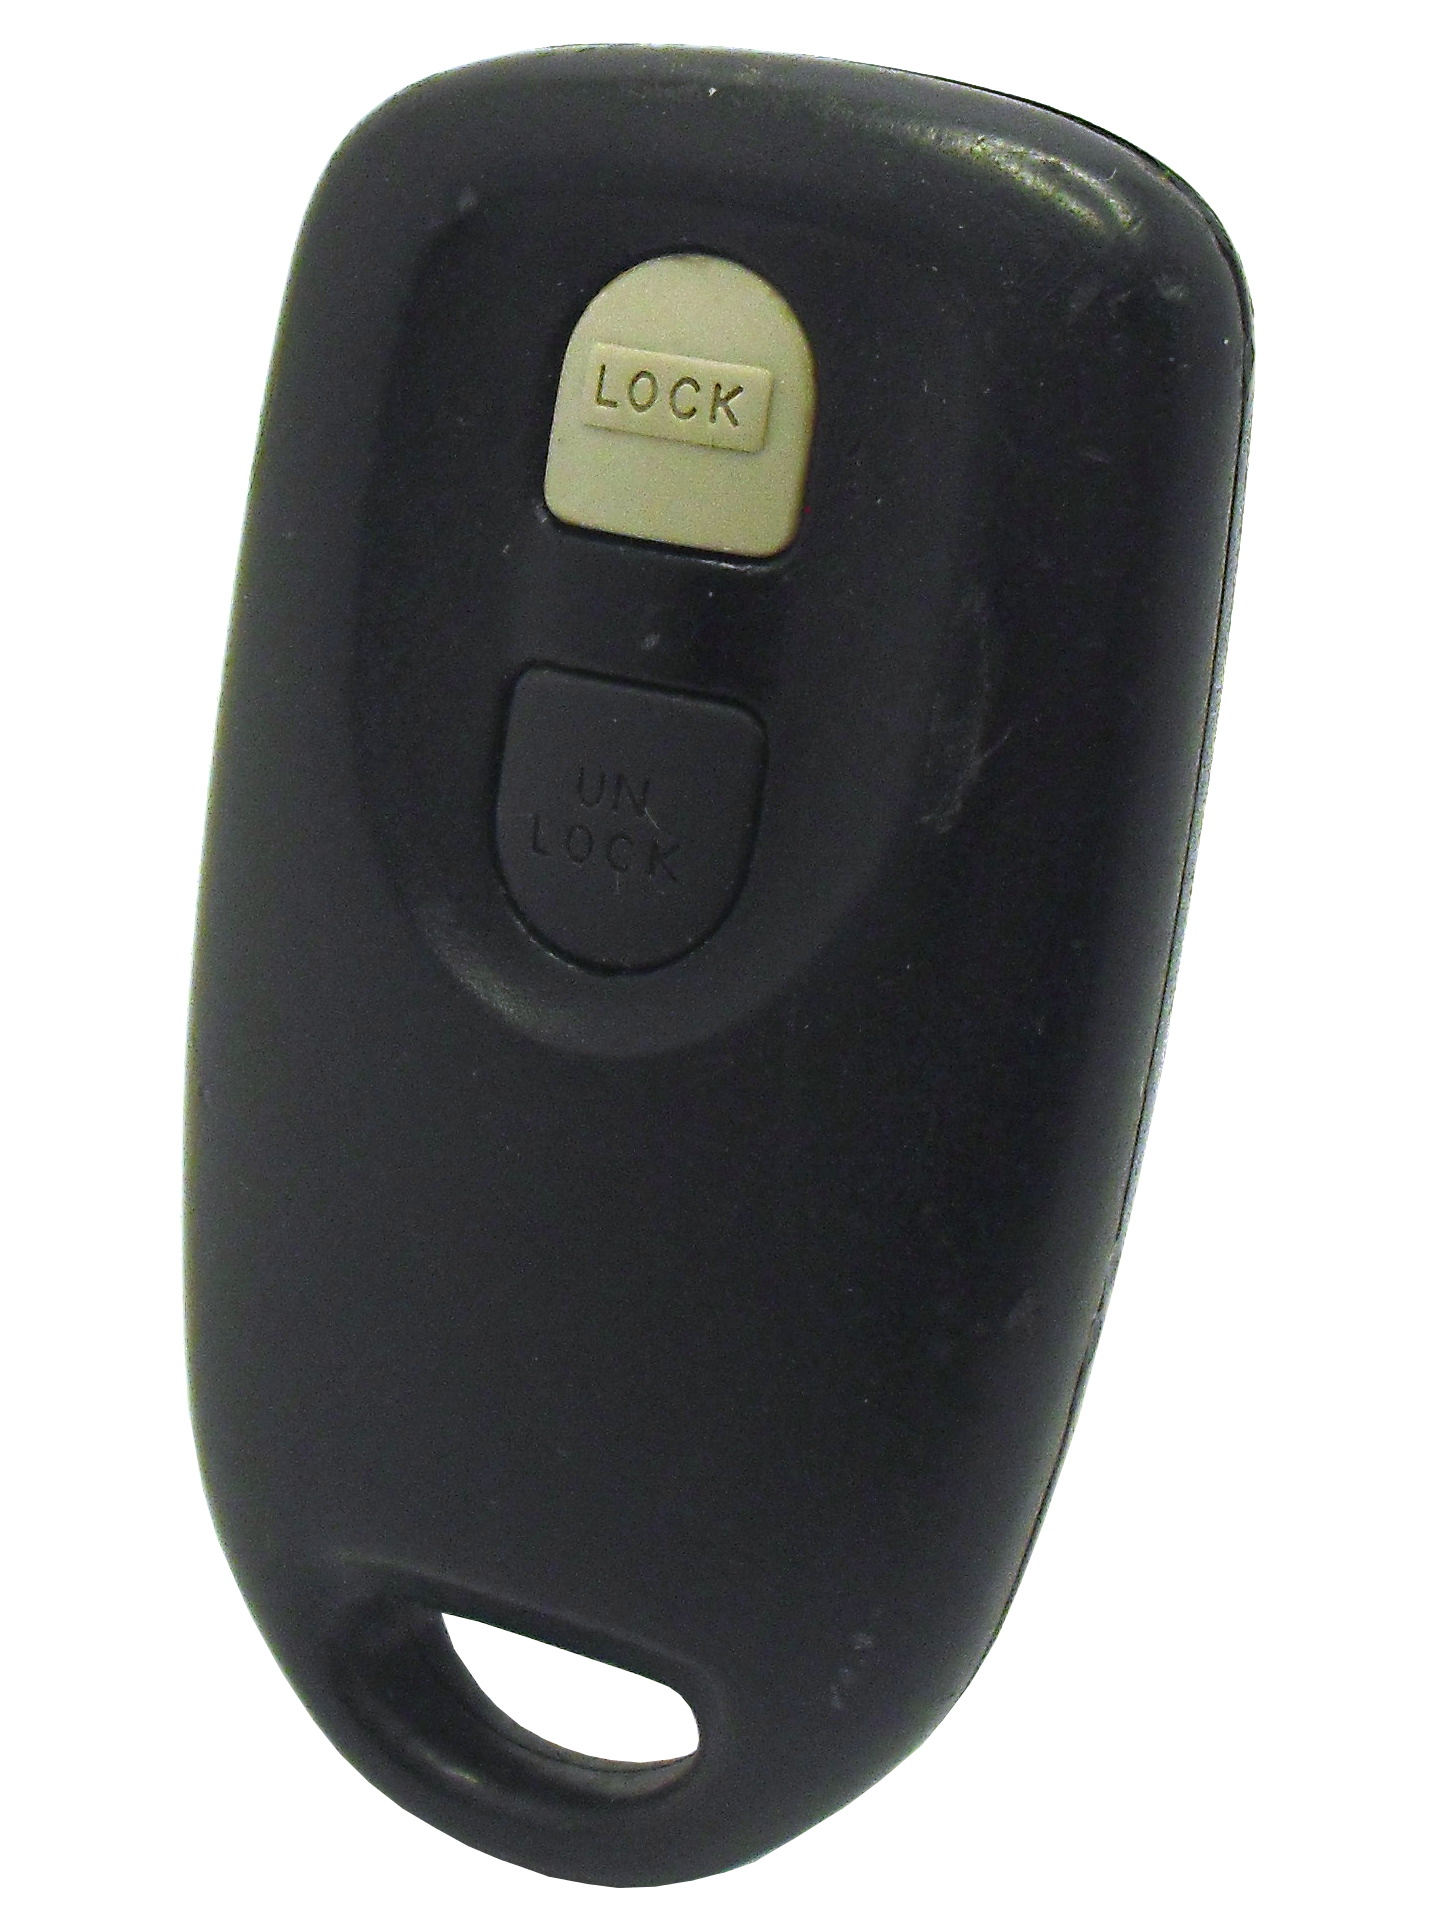 Mazda Keyless Entry Remote - 2 button